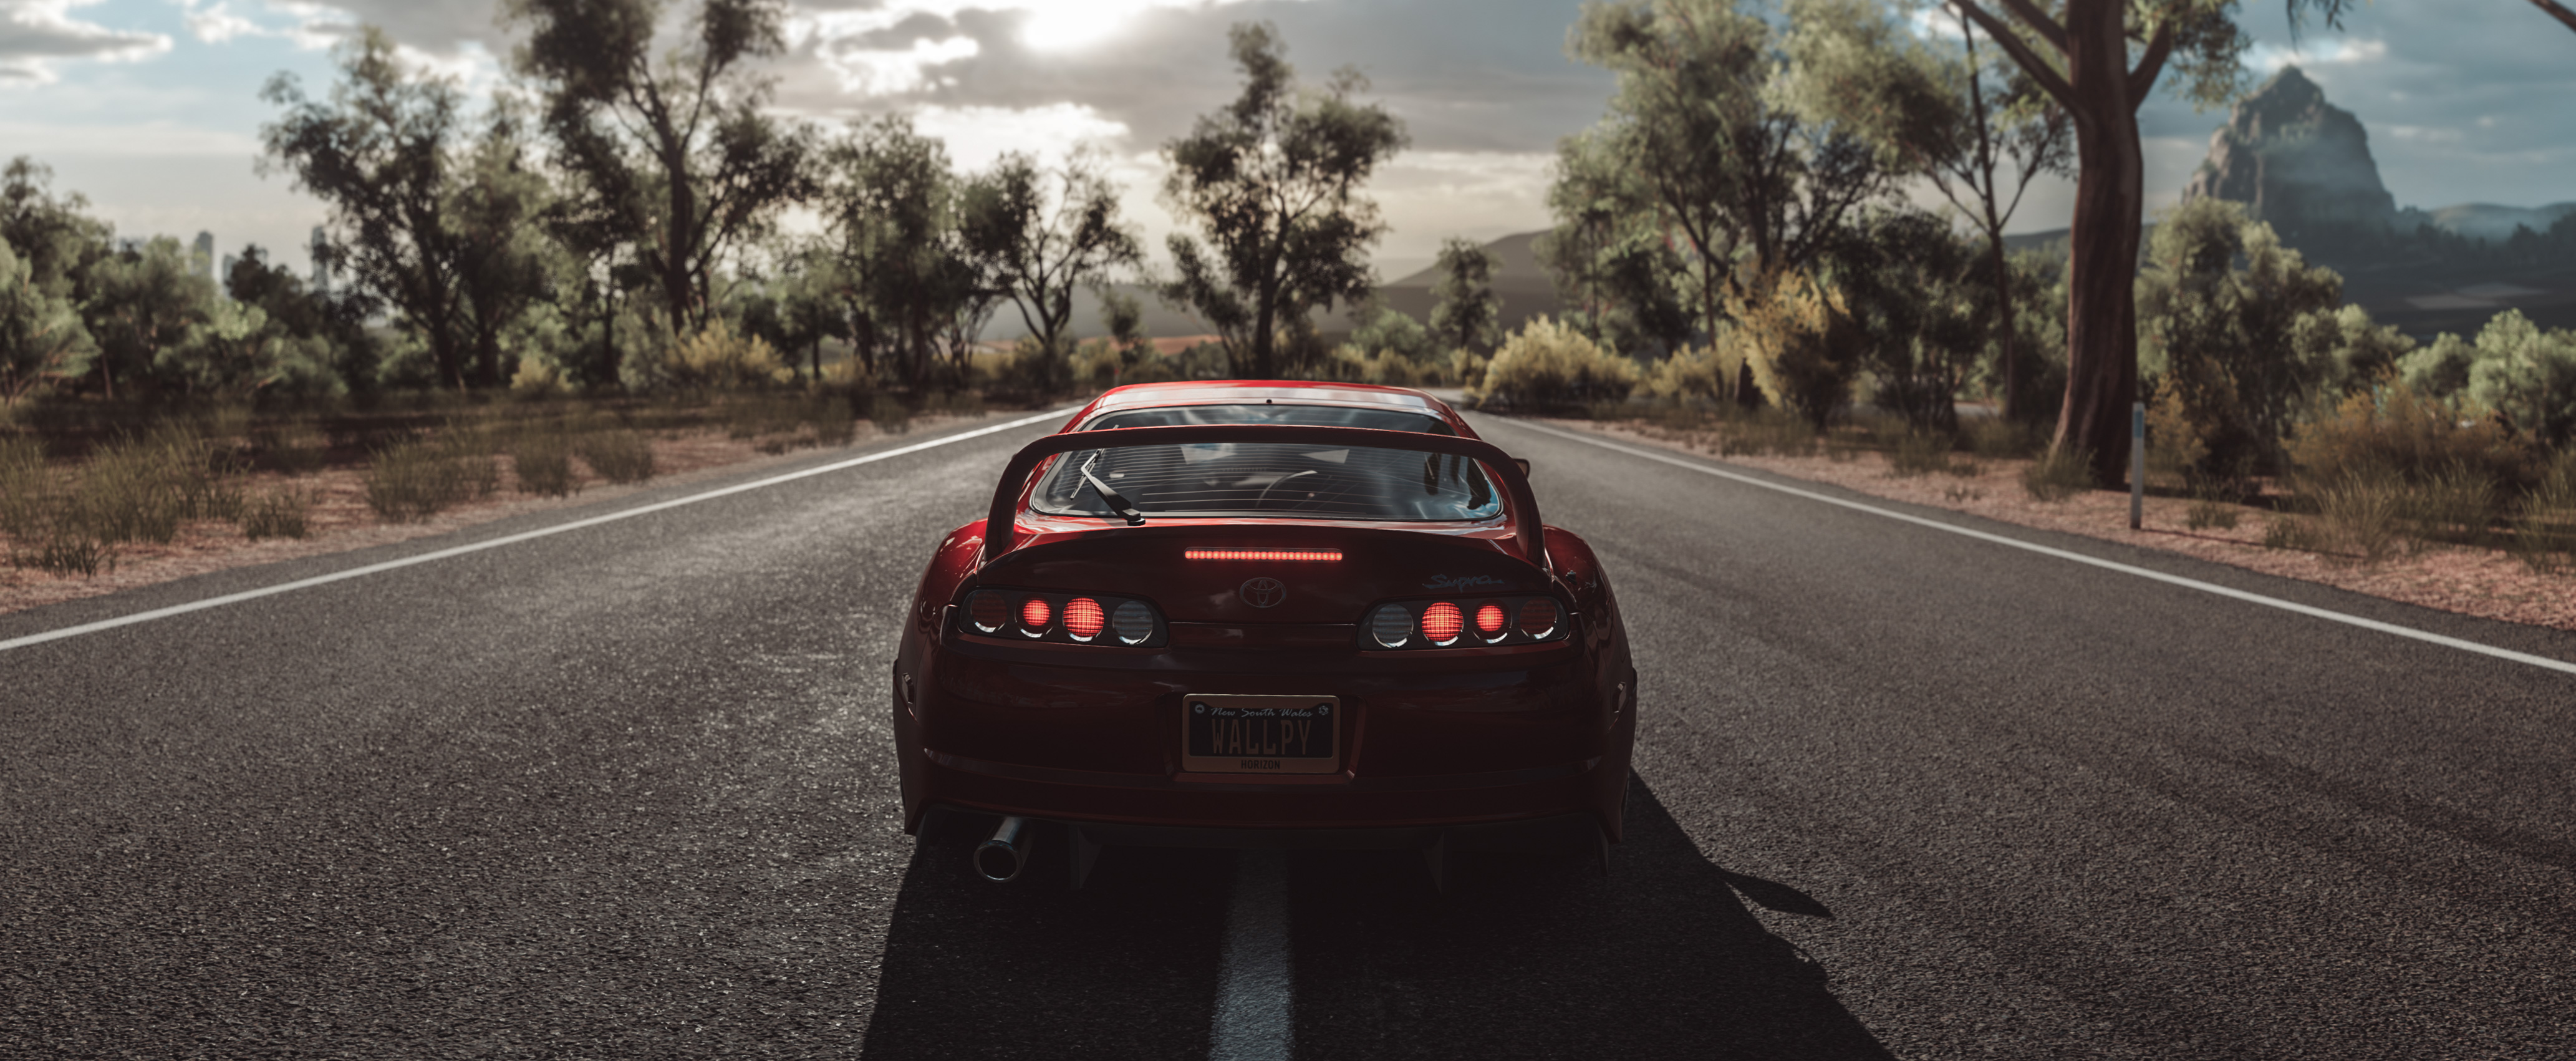 Forza Horizon 3 Toyota Supra Hd Games 4k Wallpapers Images Backgrounds Photos And Pictures